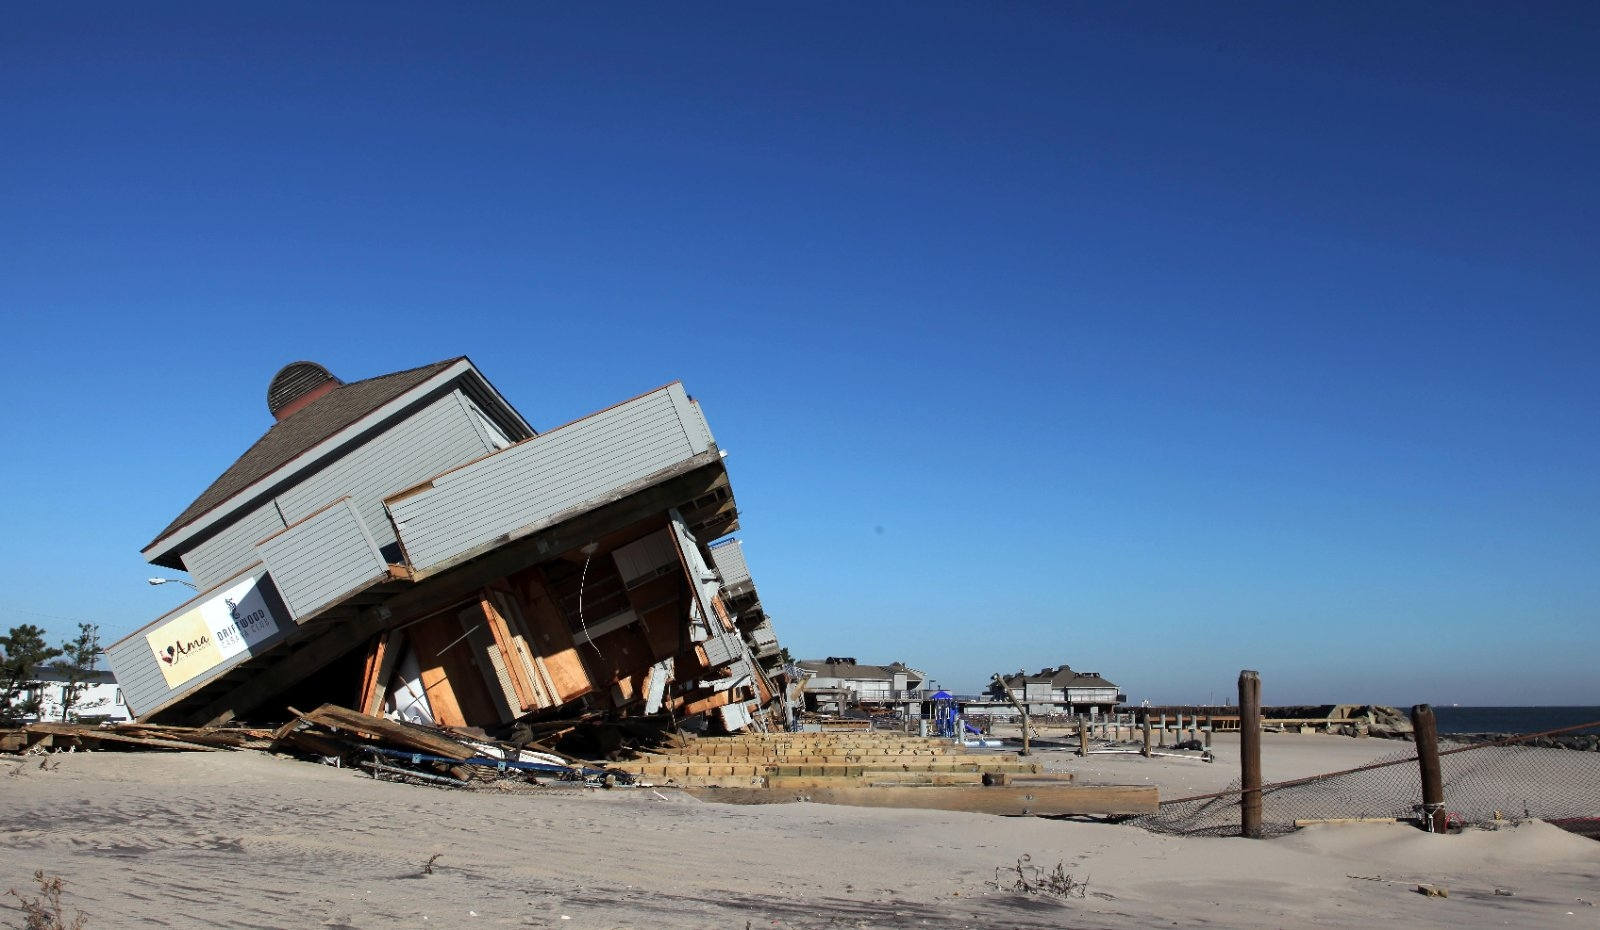 View of damage from Hurricane Sandy in N.J.